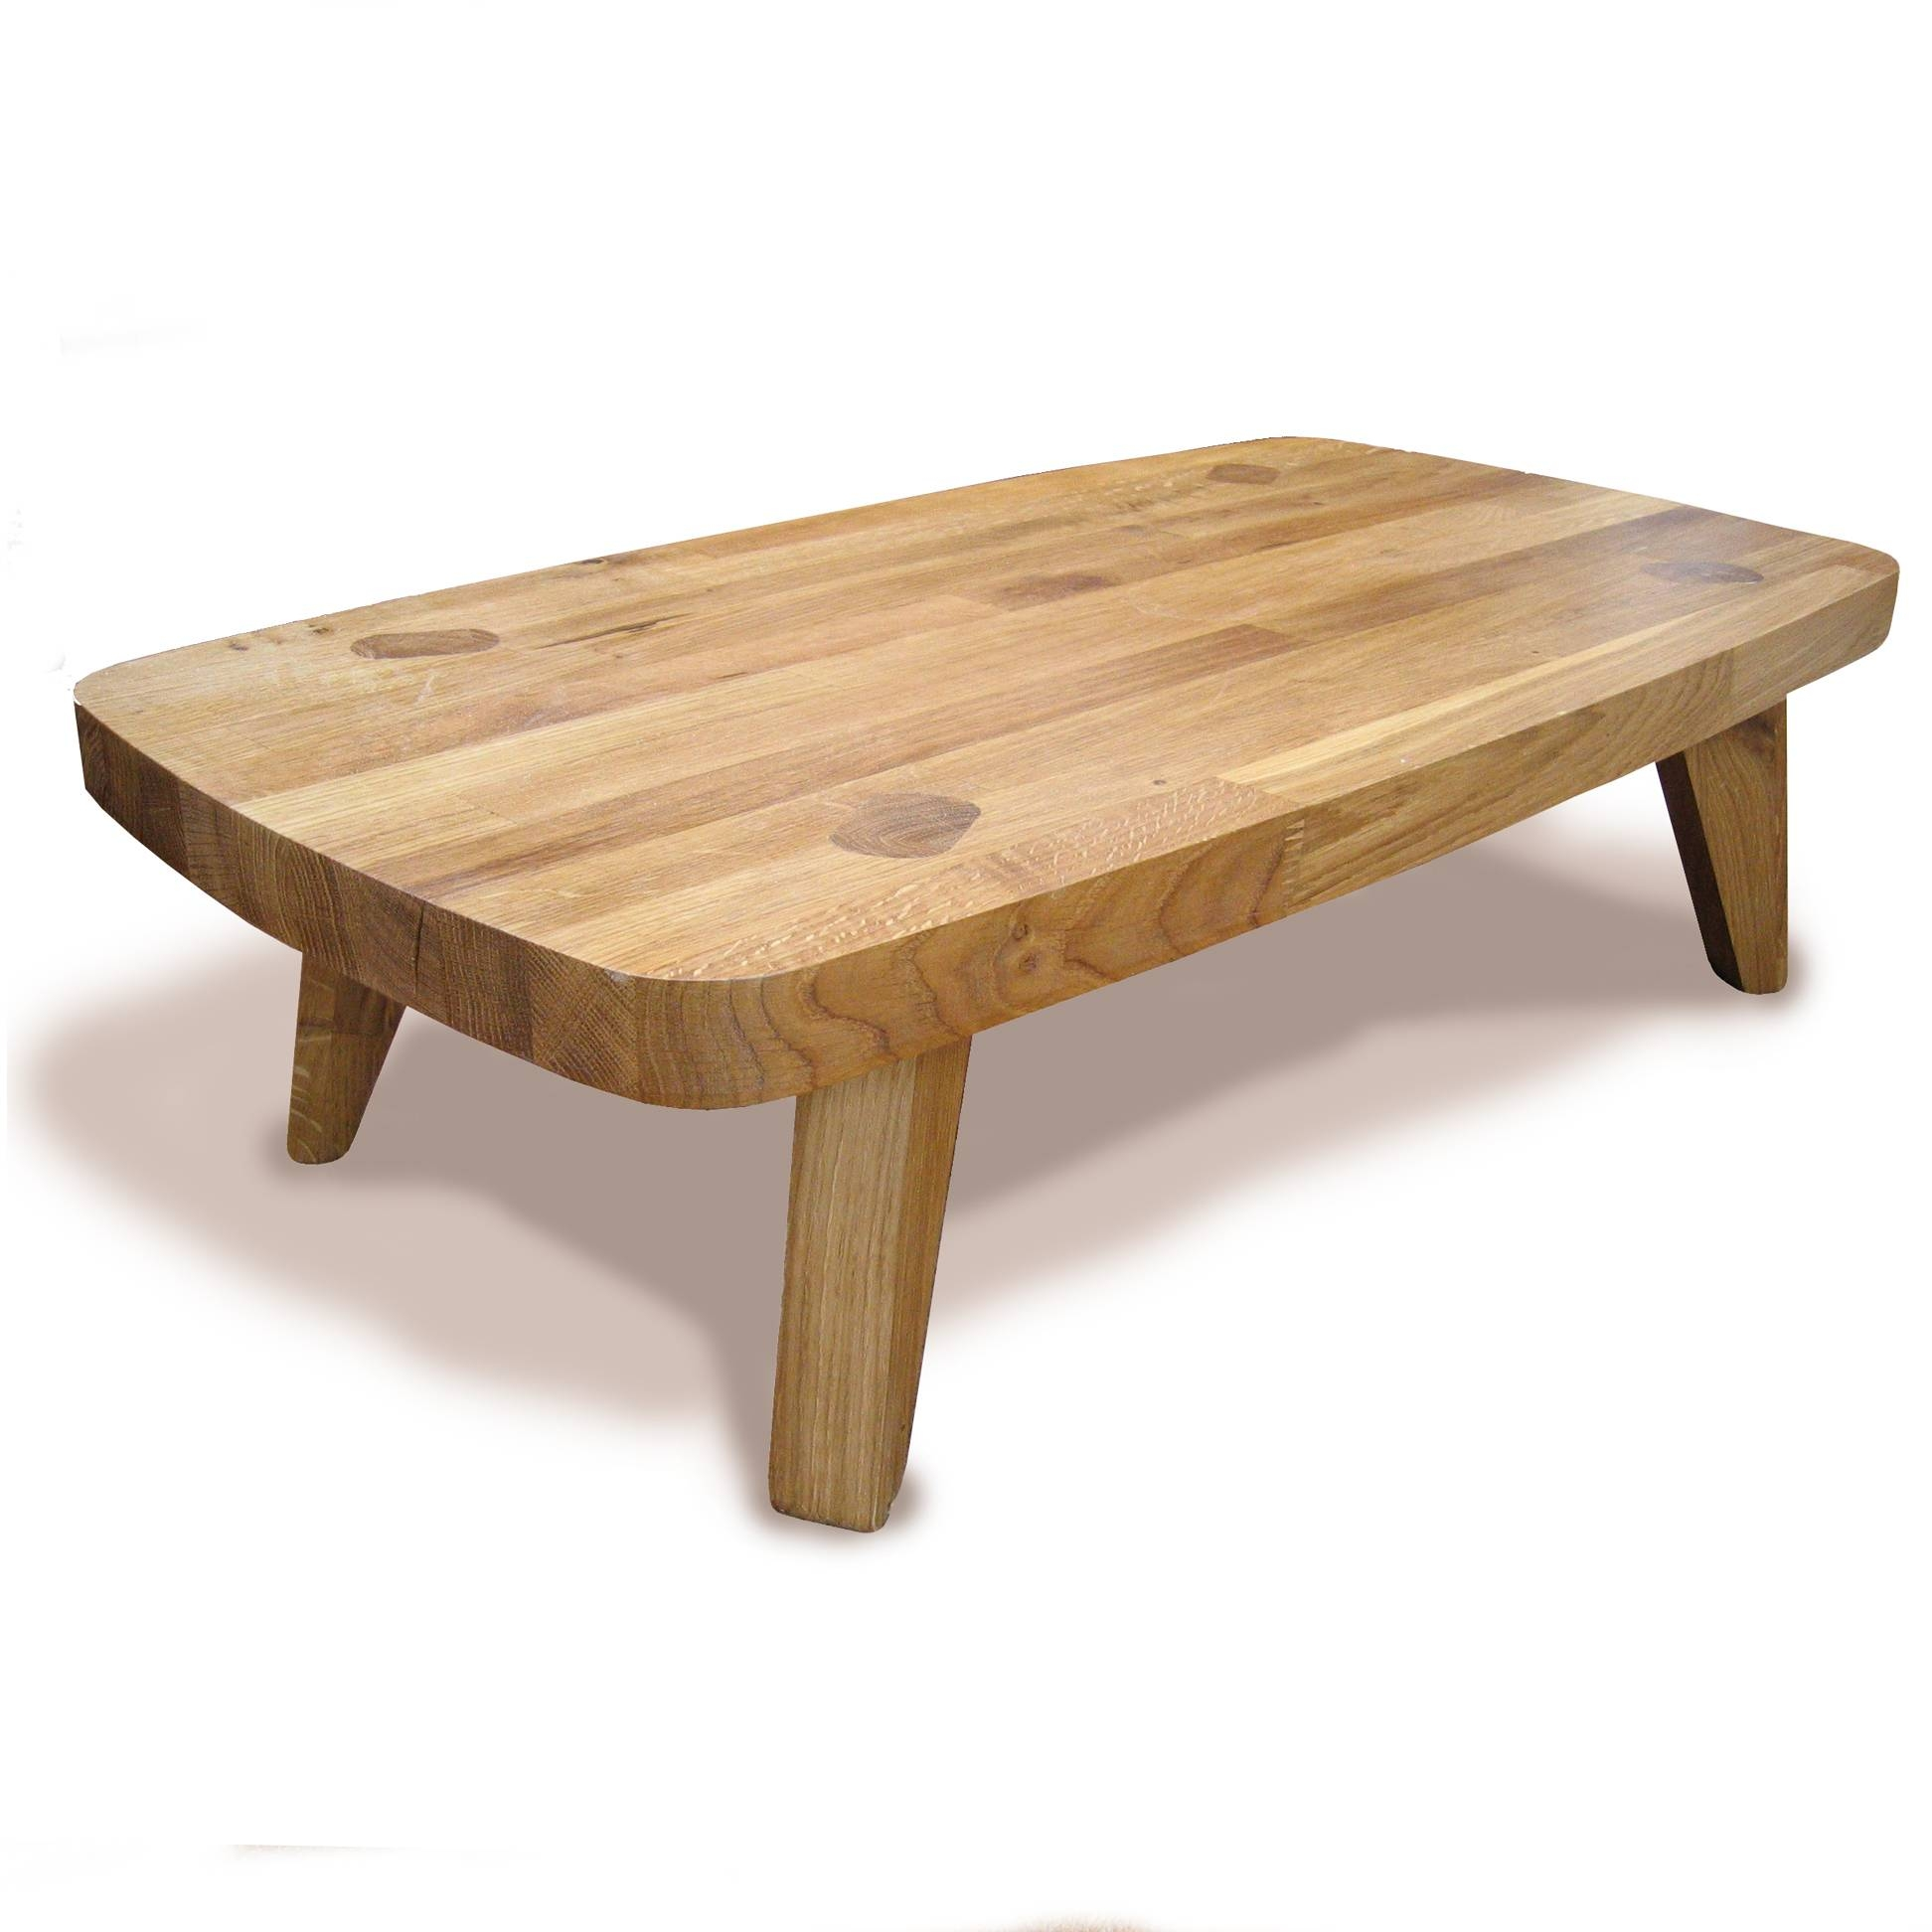 15 Ideas of Oak Wood Coffee Tables